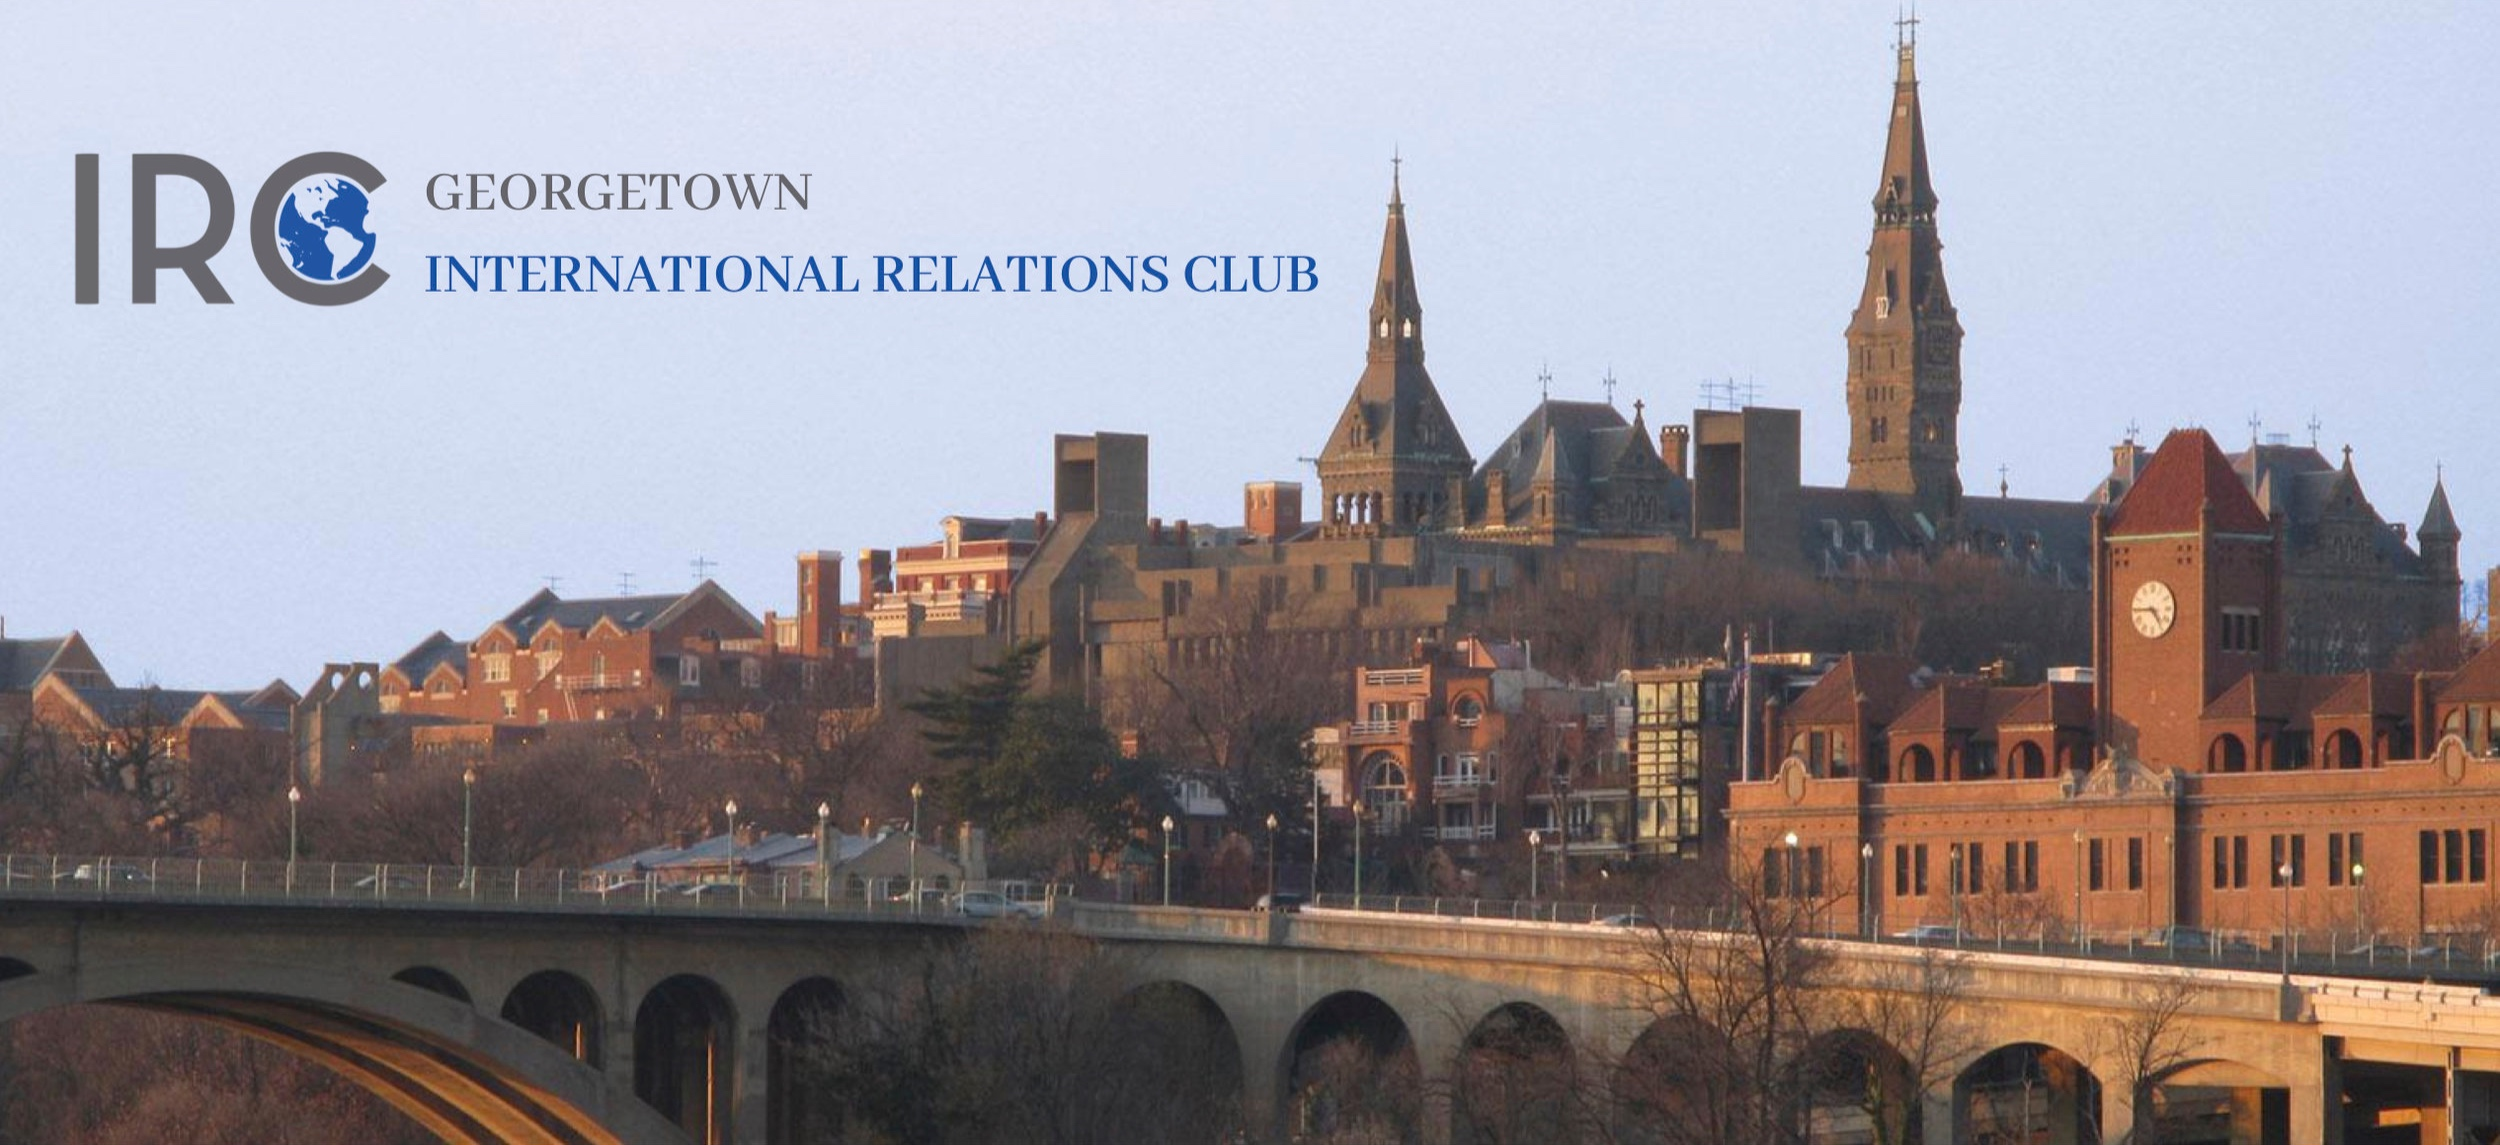 GEORGETOWN+INTERNATIONAL+RELATIONS+CLUB.jpg